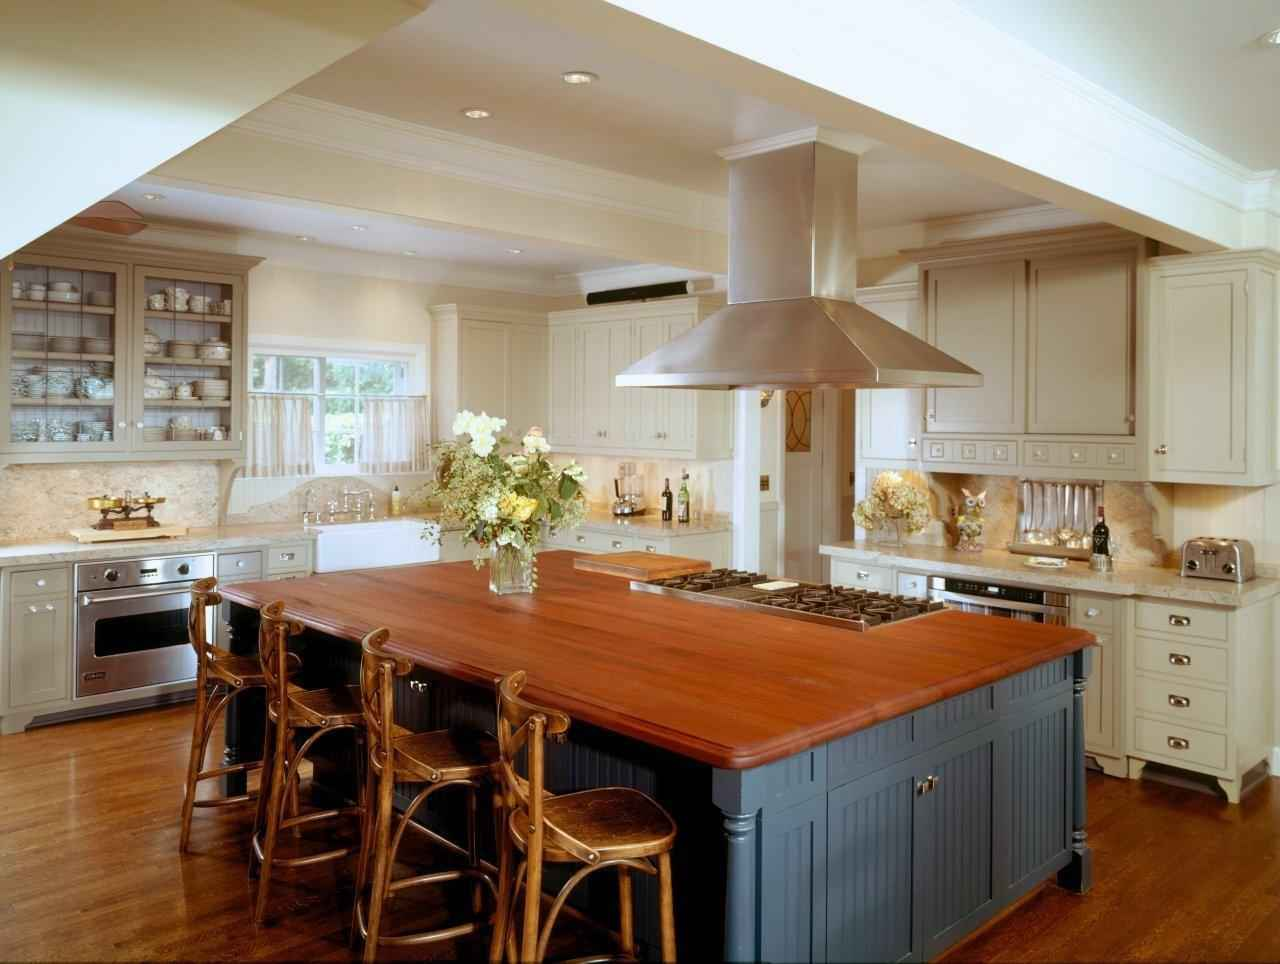 inexpensive kitchen decor peerless faucet parts cheap countertop ideas for your